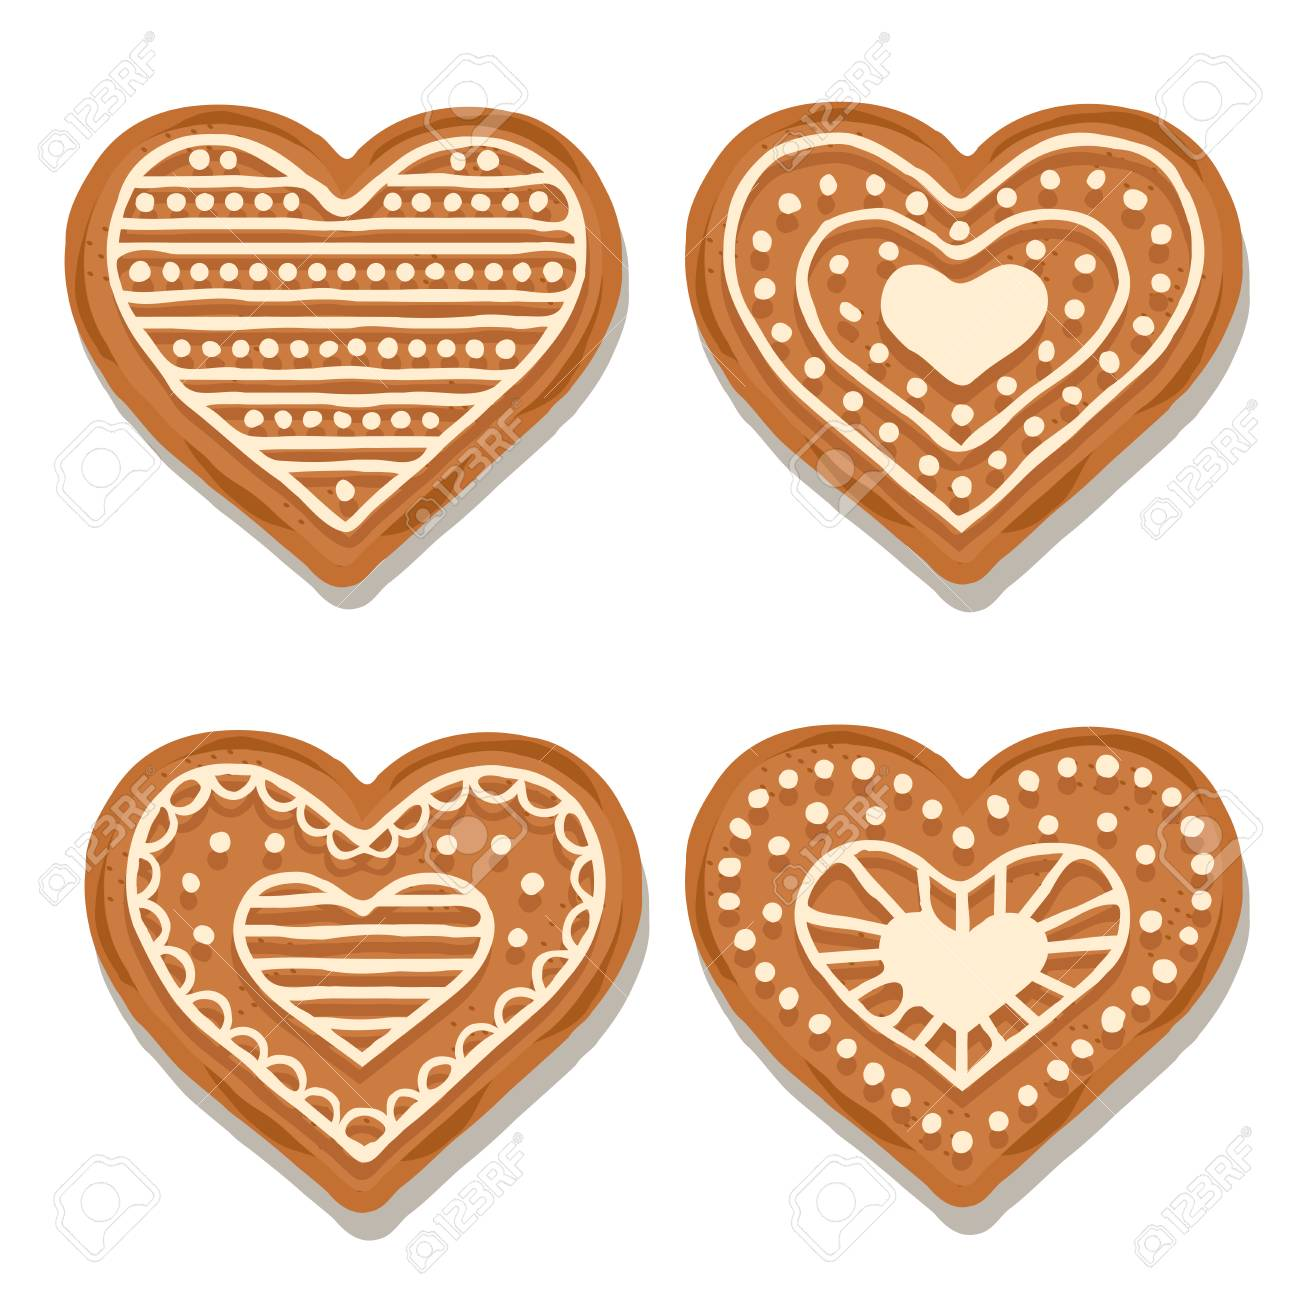 Realistic Gingerbread Hearts Collection Isolated On White Background